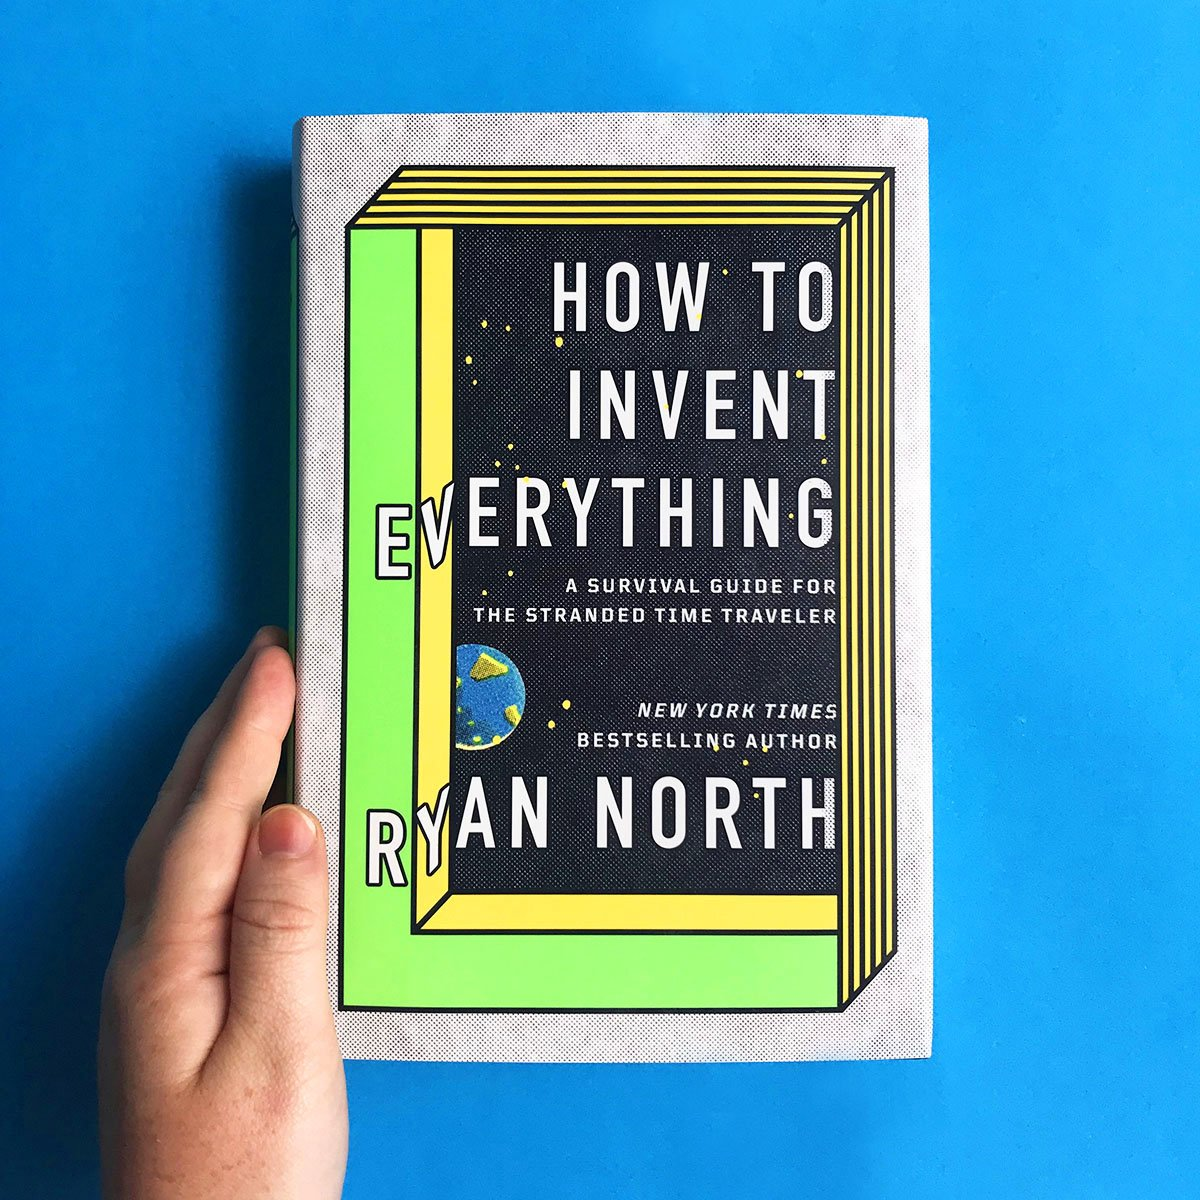 HOW TO INVENT EVERYTHING is out today! Its a survival guide to help you, the stranded time traveler, rebuild civilization in any time period in history. I think its the best thing Ive ever written, and I know itll help you make history... BETTER. howtoinventeverything.com/getthebook